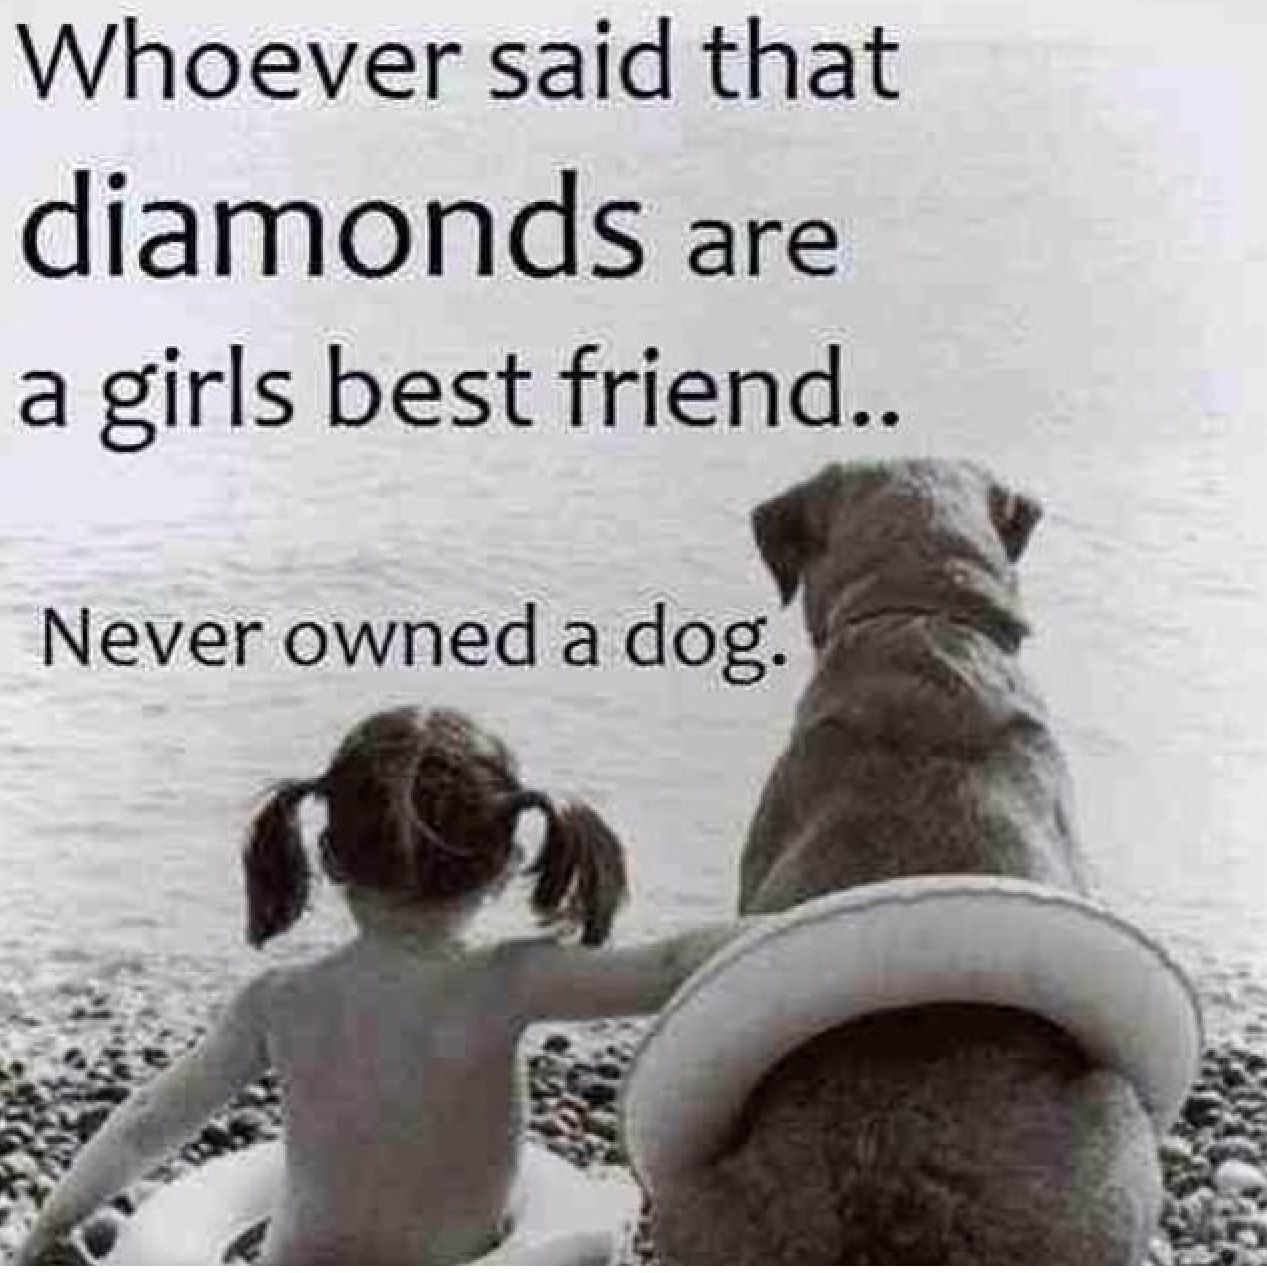 Dog Love Quotes Dogs Life Friends Quotes  Dogs  Pinterest  Dog Animal And